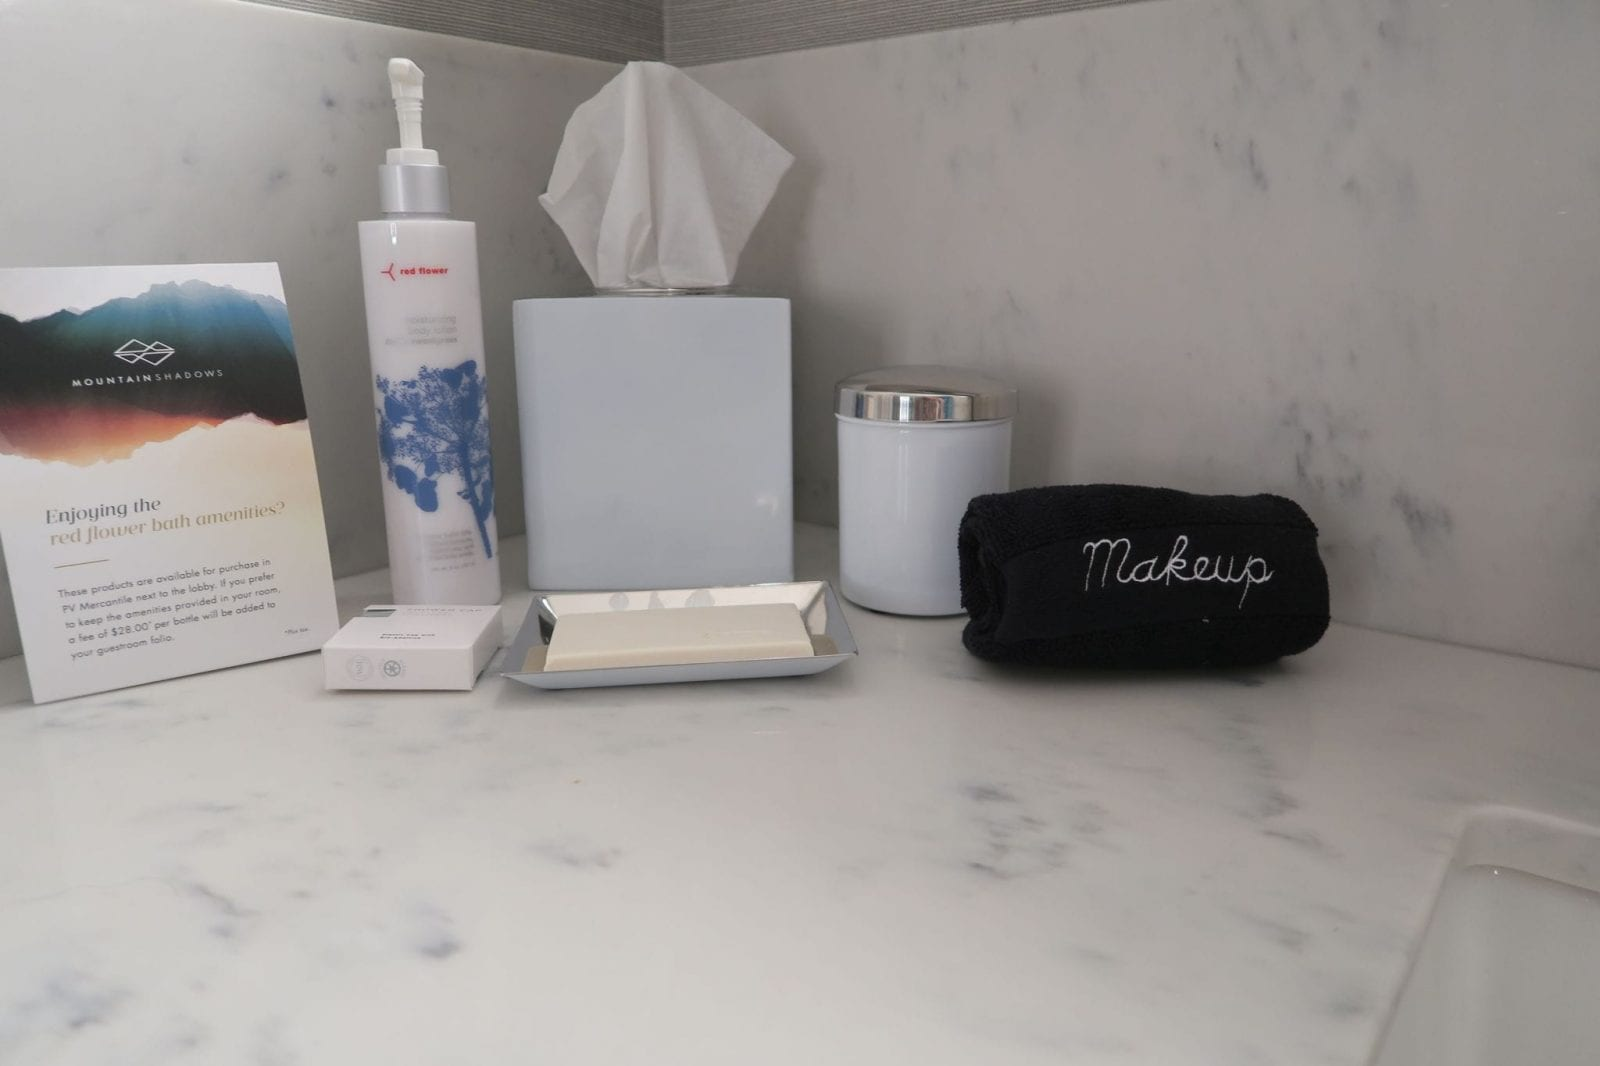 This is a view of the bathroom set up with the toiletries and necessities at Mountain Shadows.